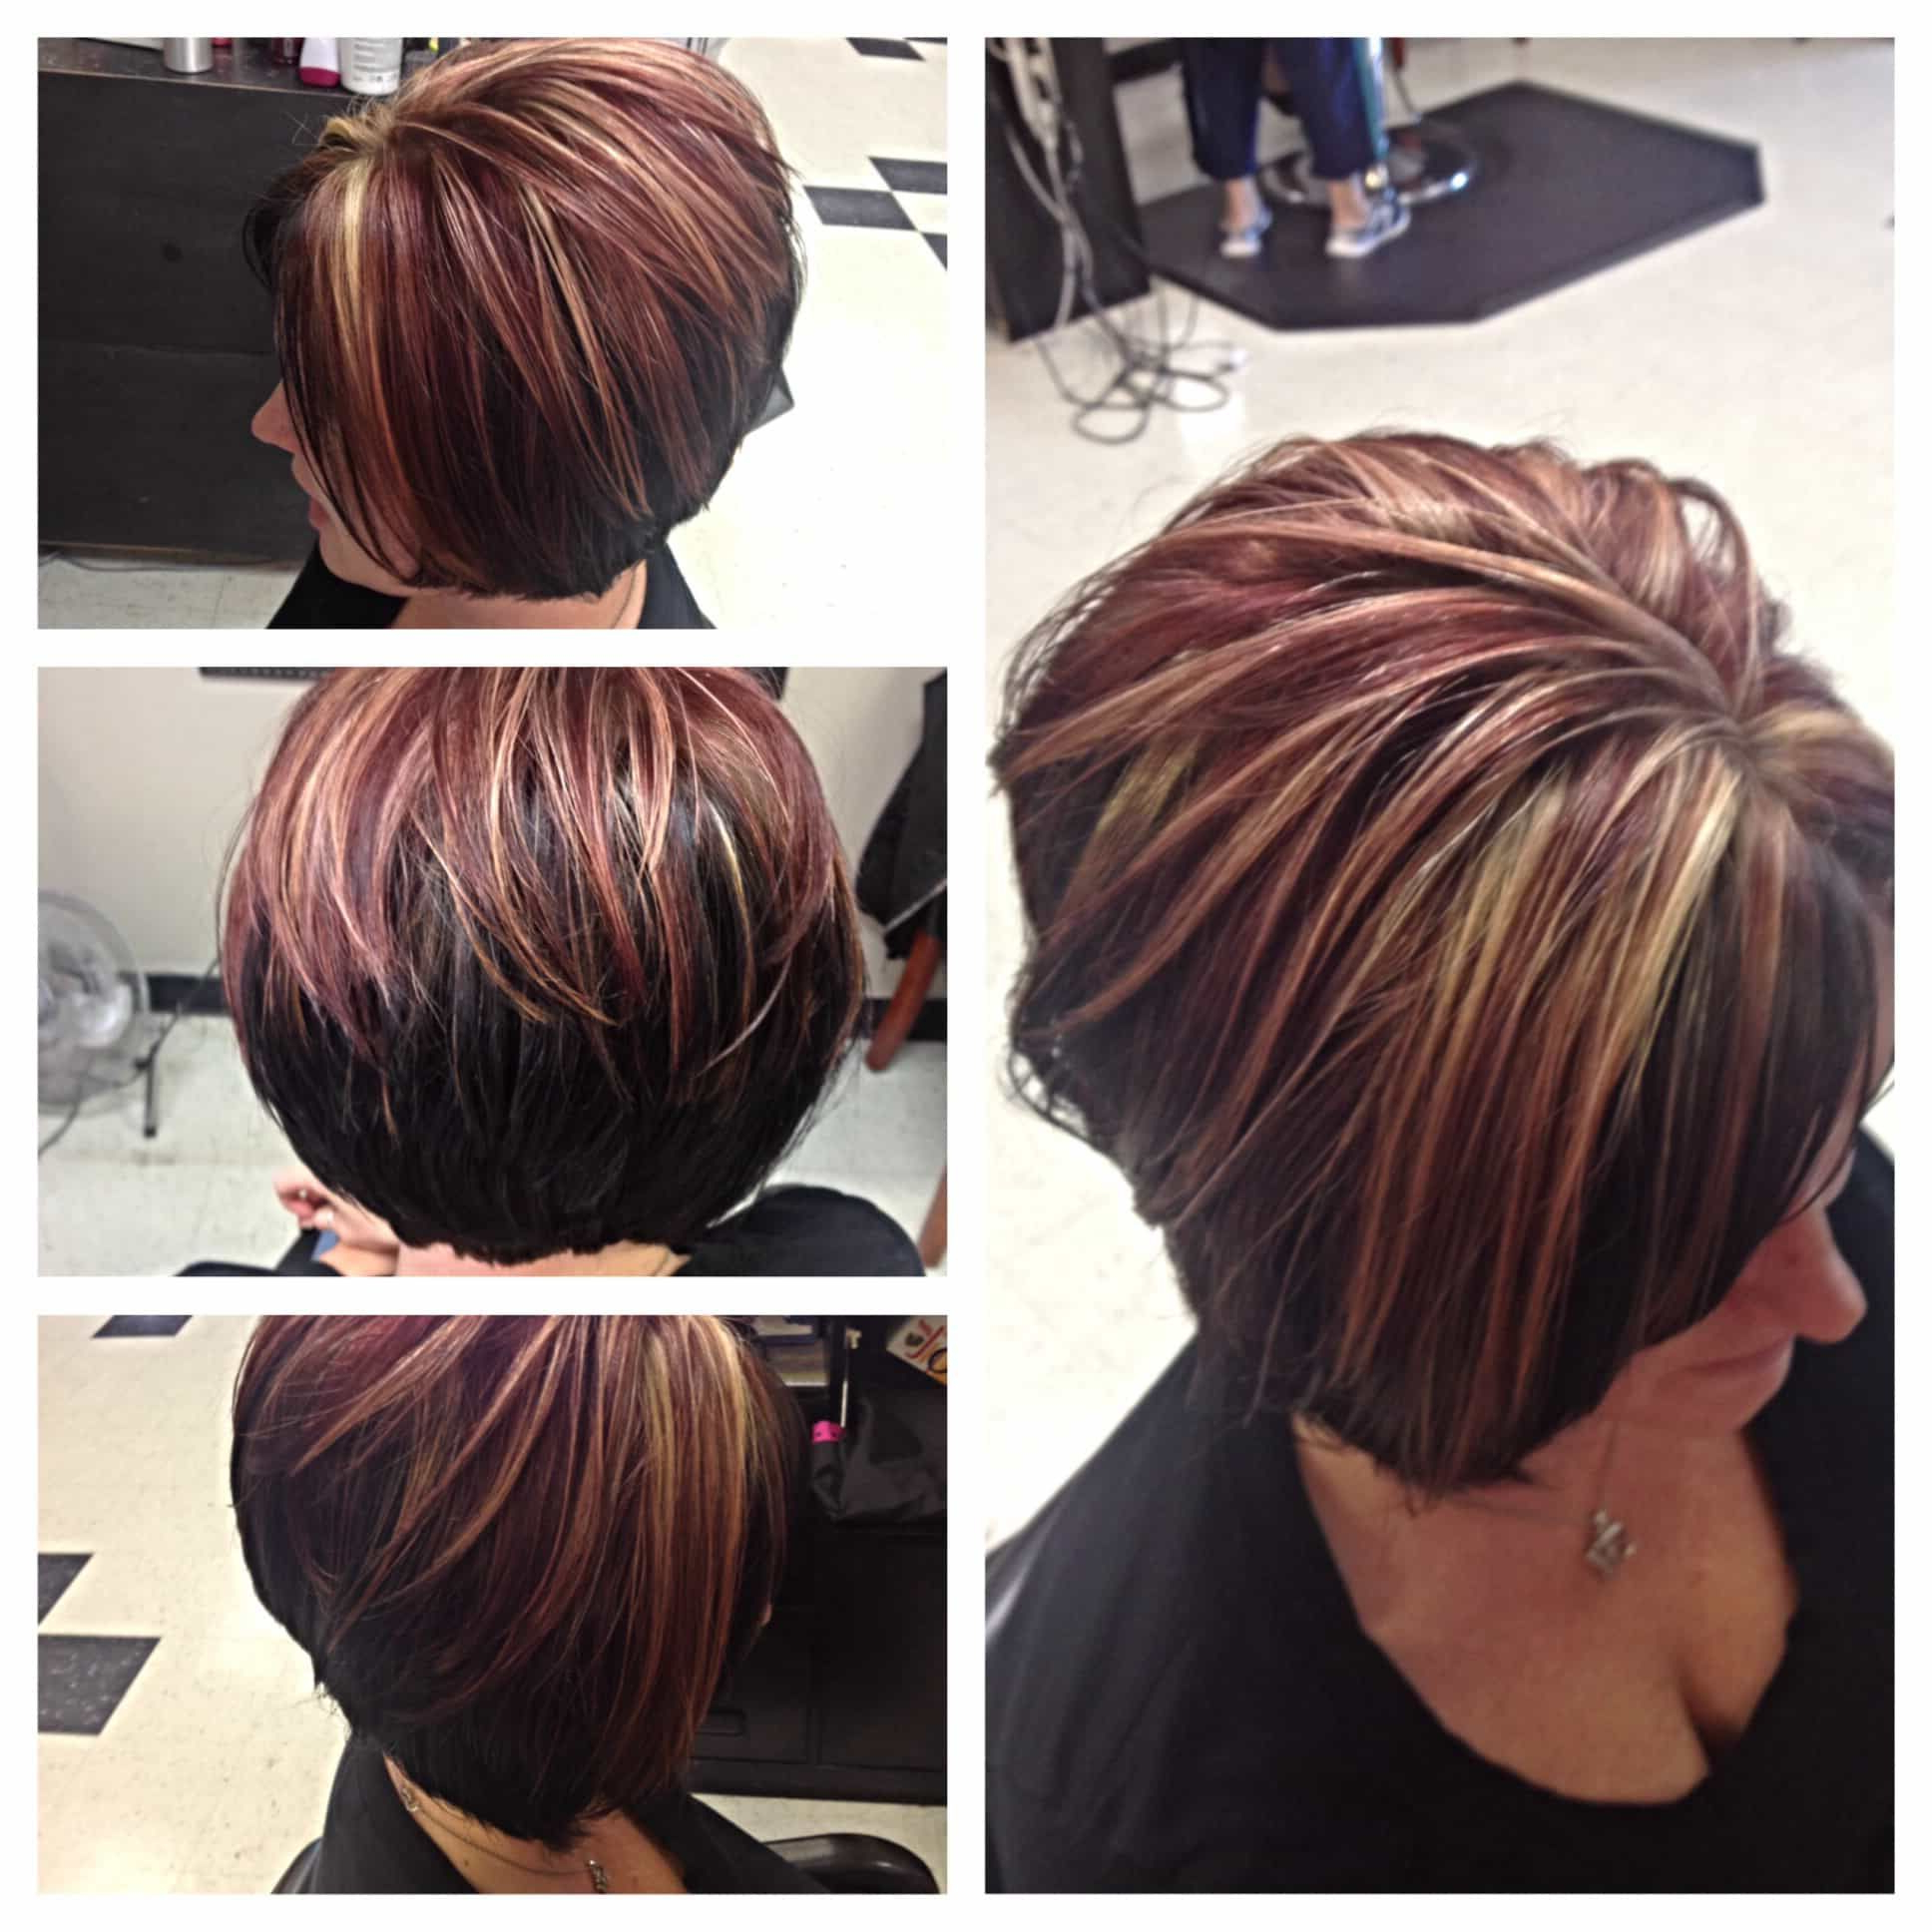 Short Haircuts For Brown Hair With Blonde Highlights And Red Throughout Short Haircuts With Red And Blonde Highlights (View 2 of 25)